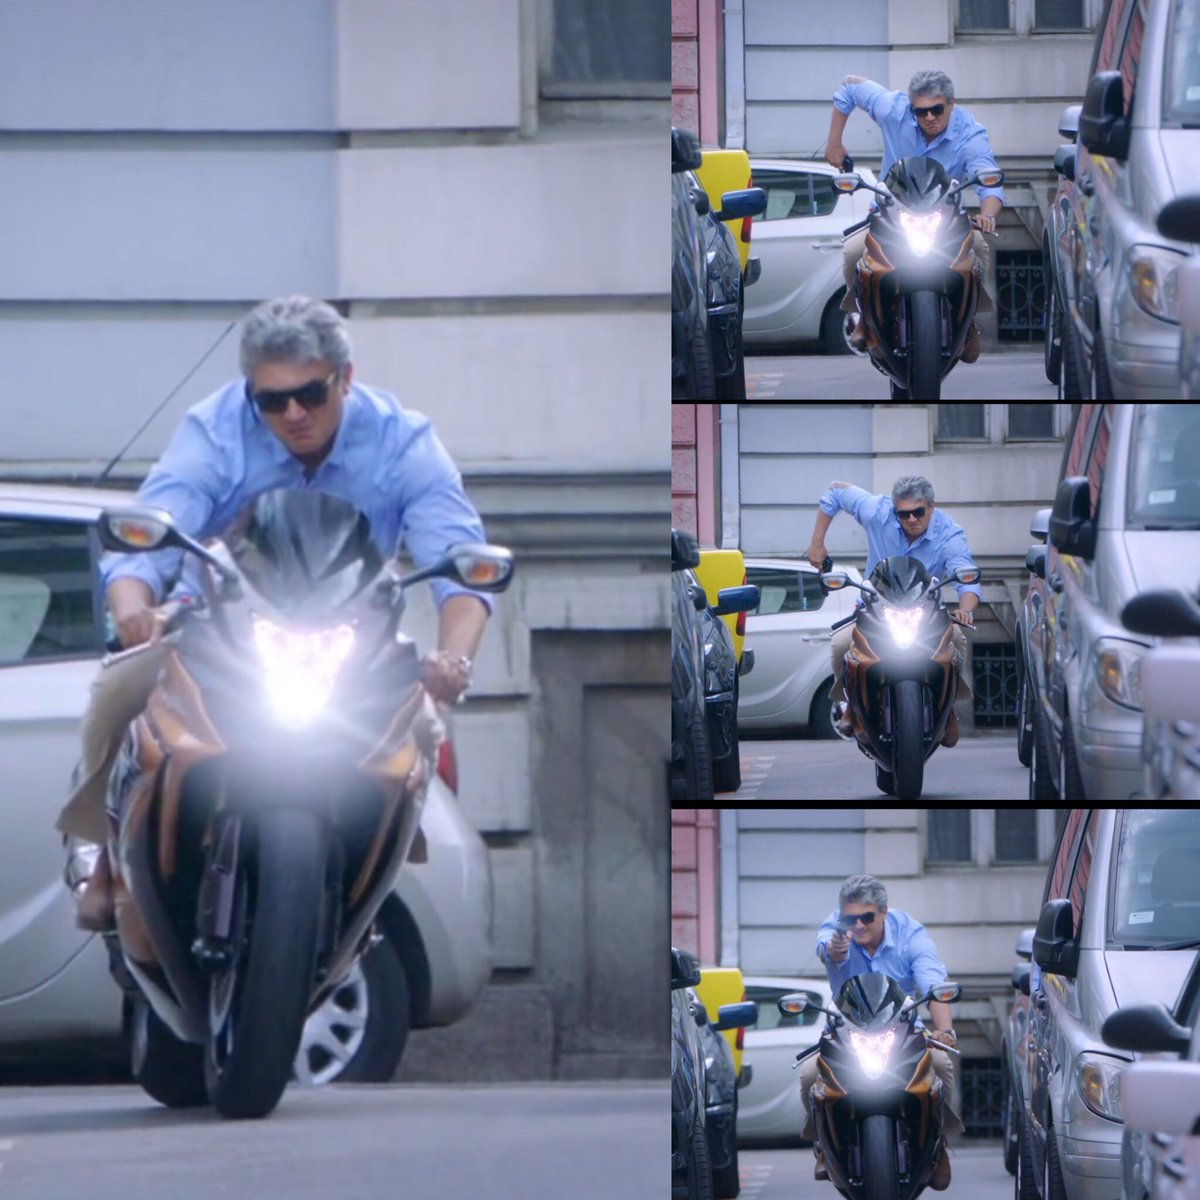 free hd thala ajith stylish bike in vivegam mobile desktop background mass images